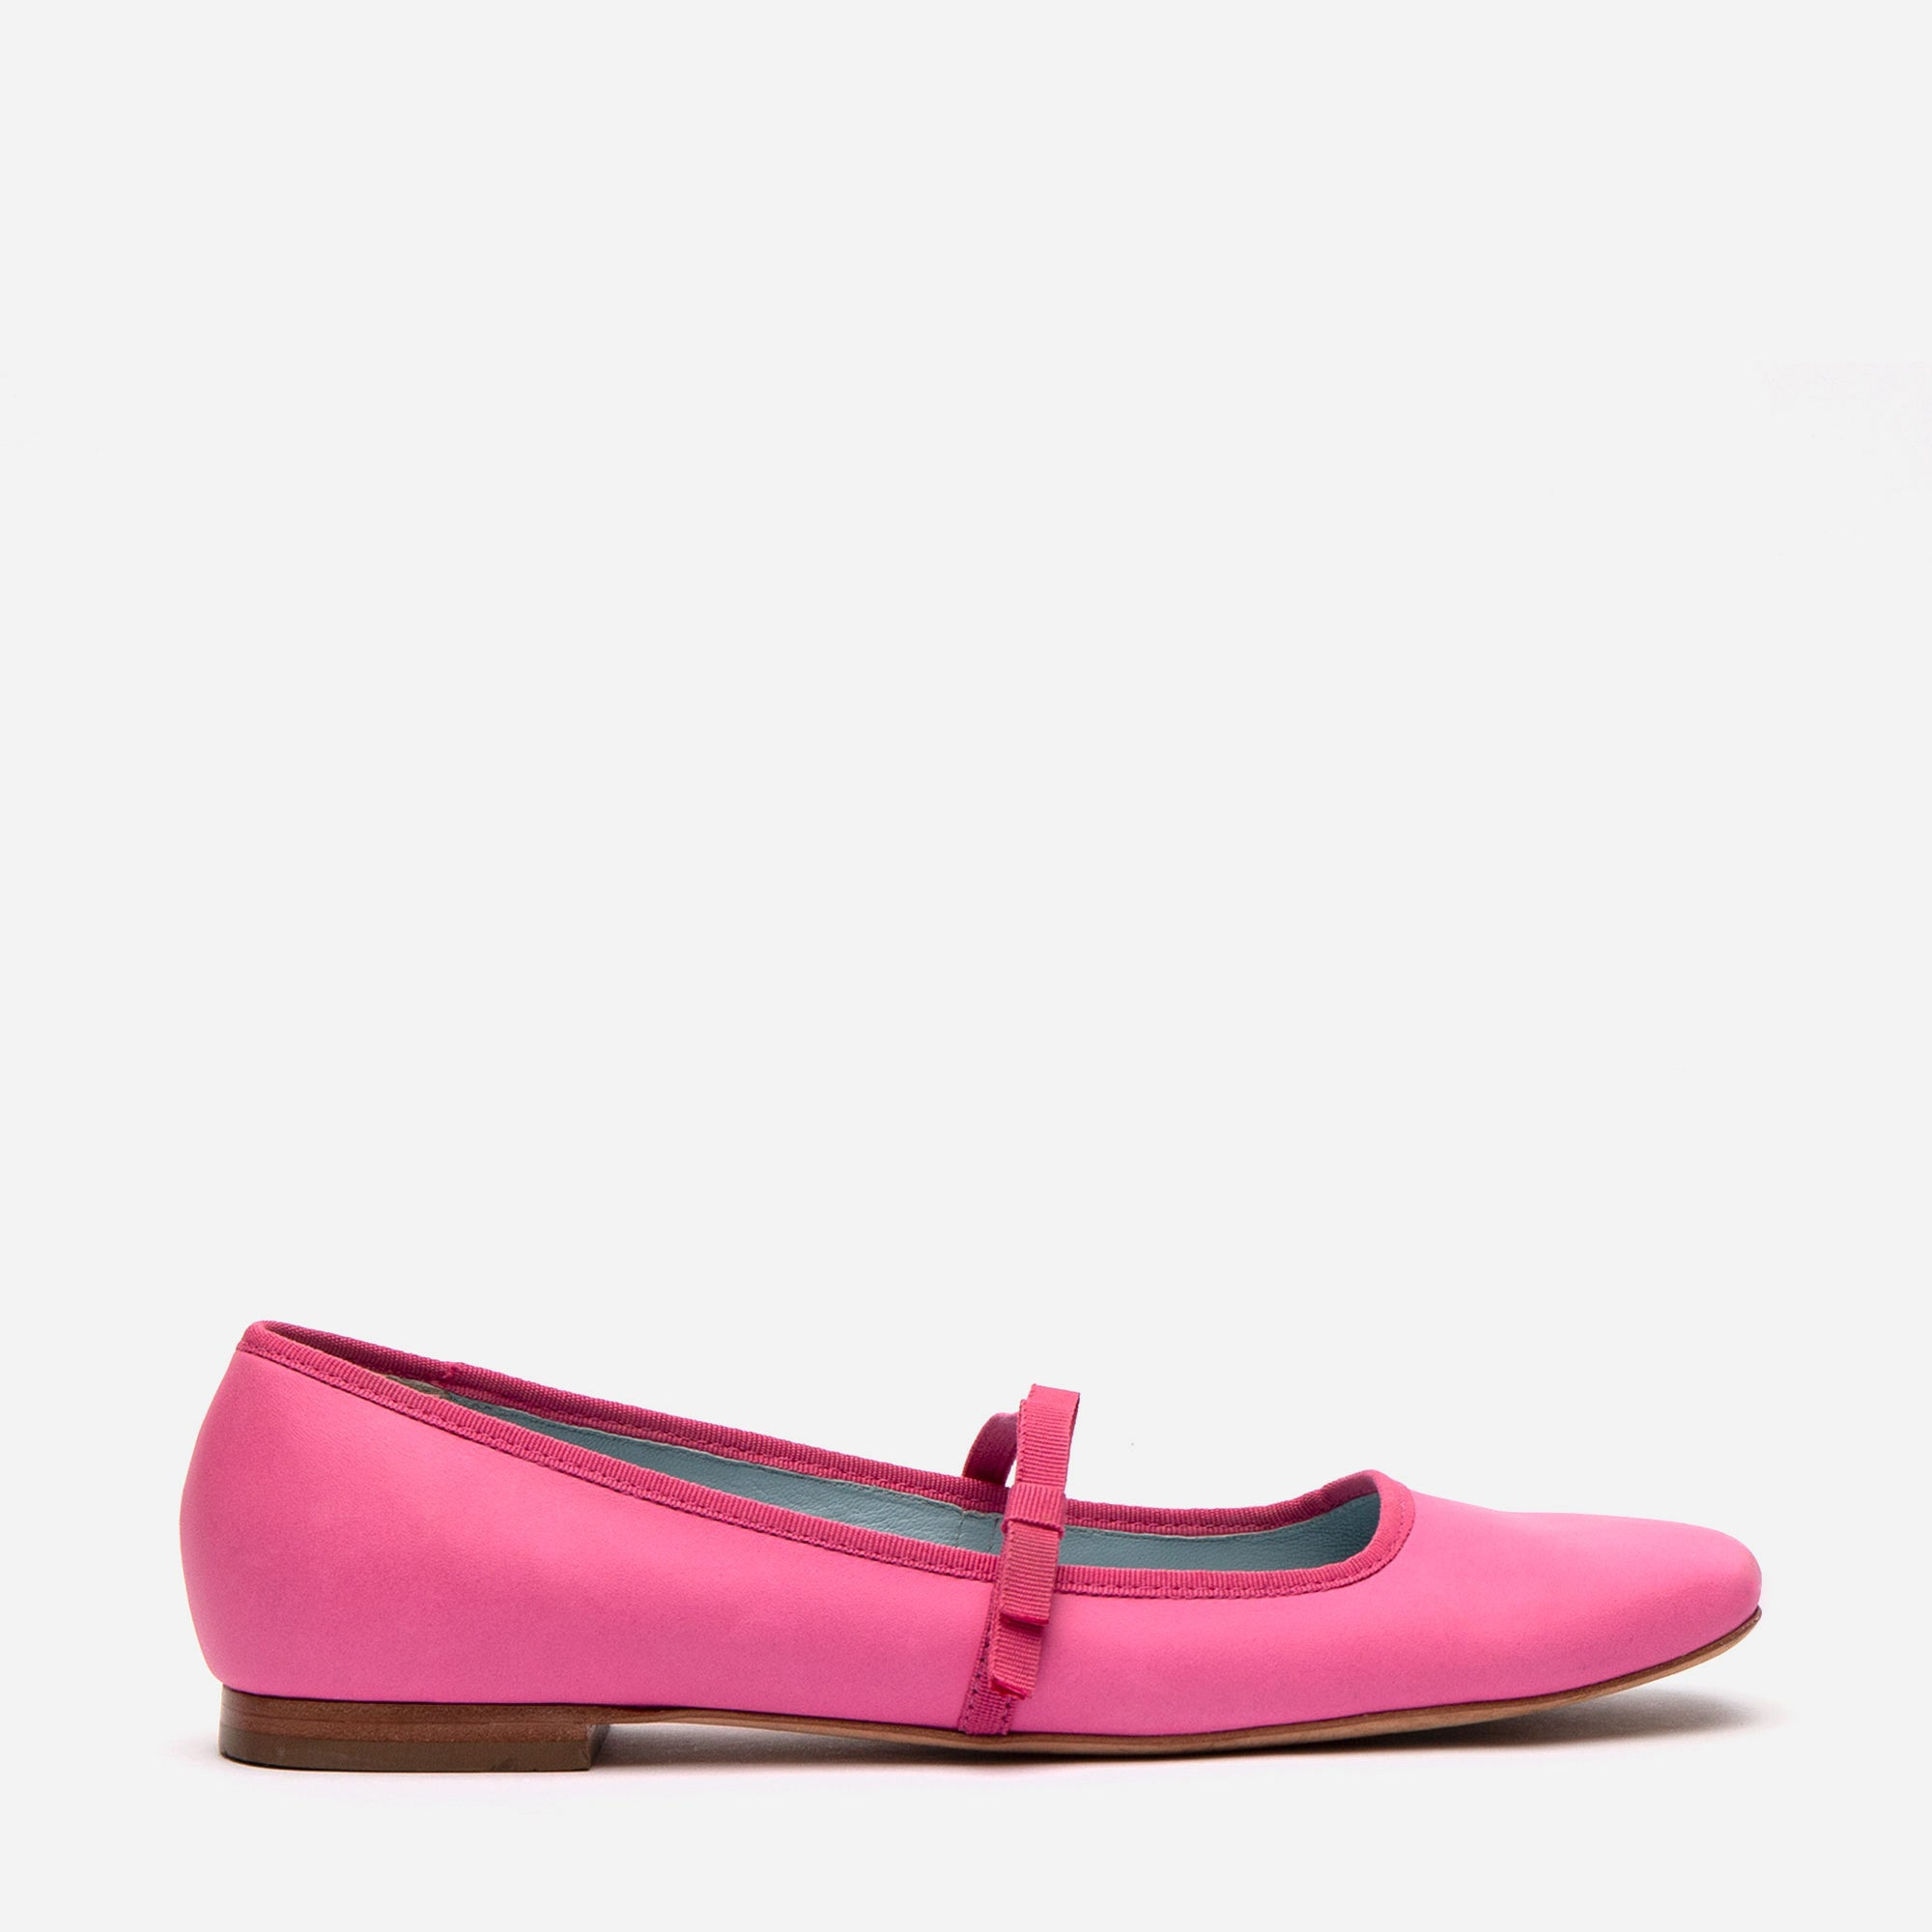 Jude Mary Jane Leather Flat Pink